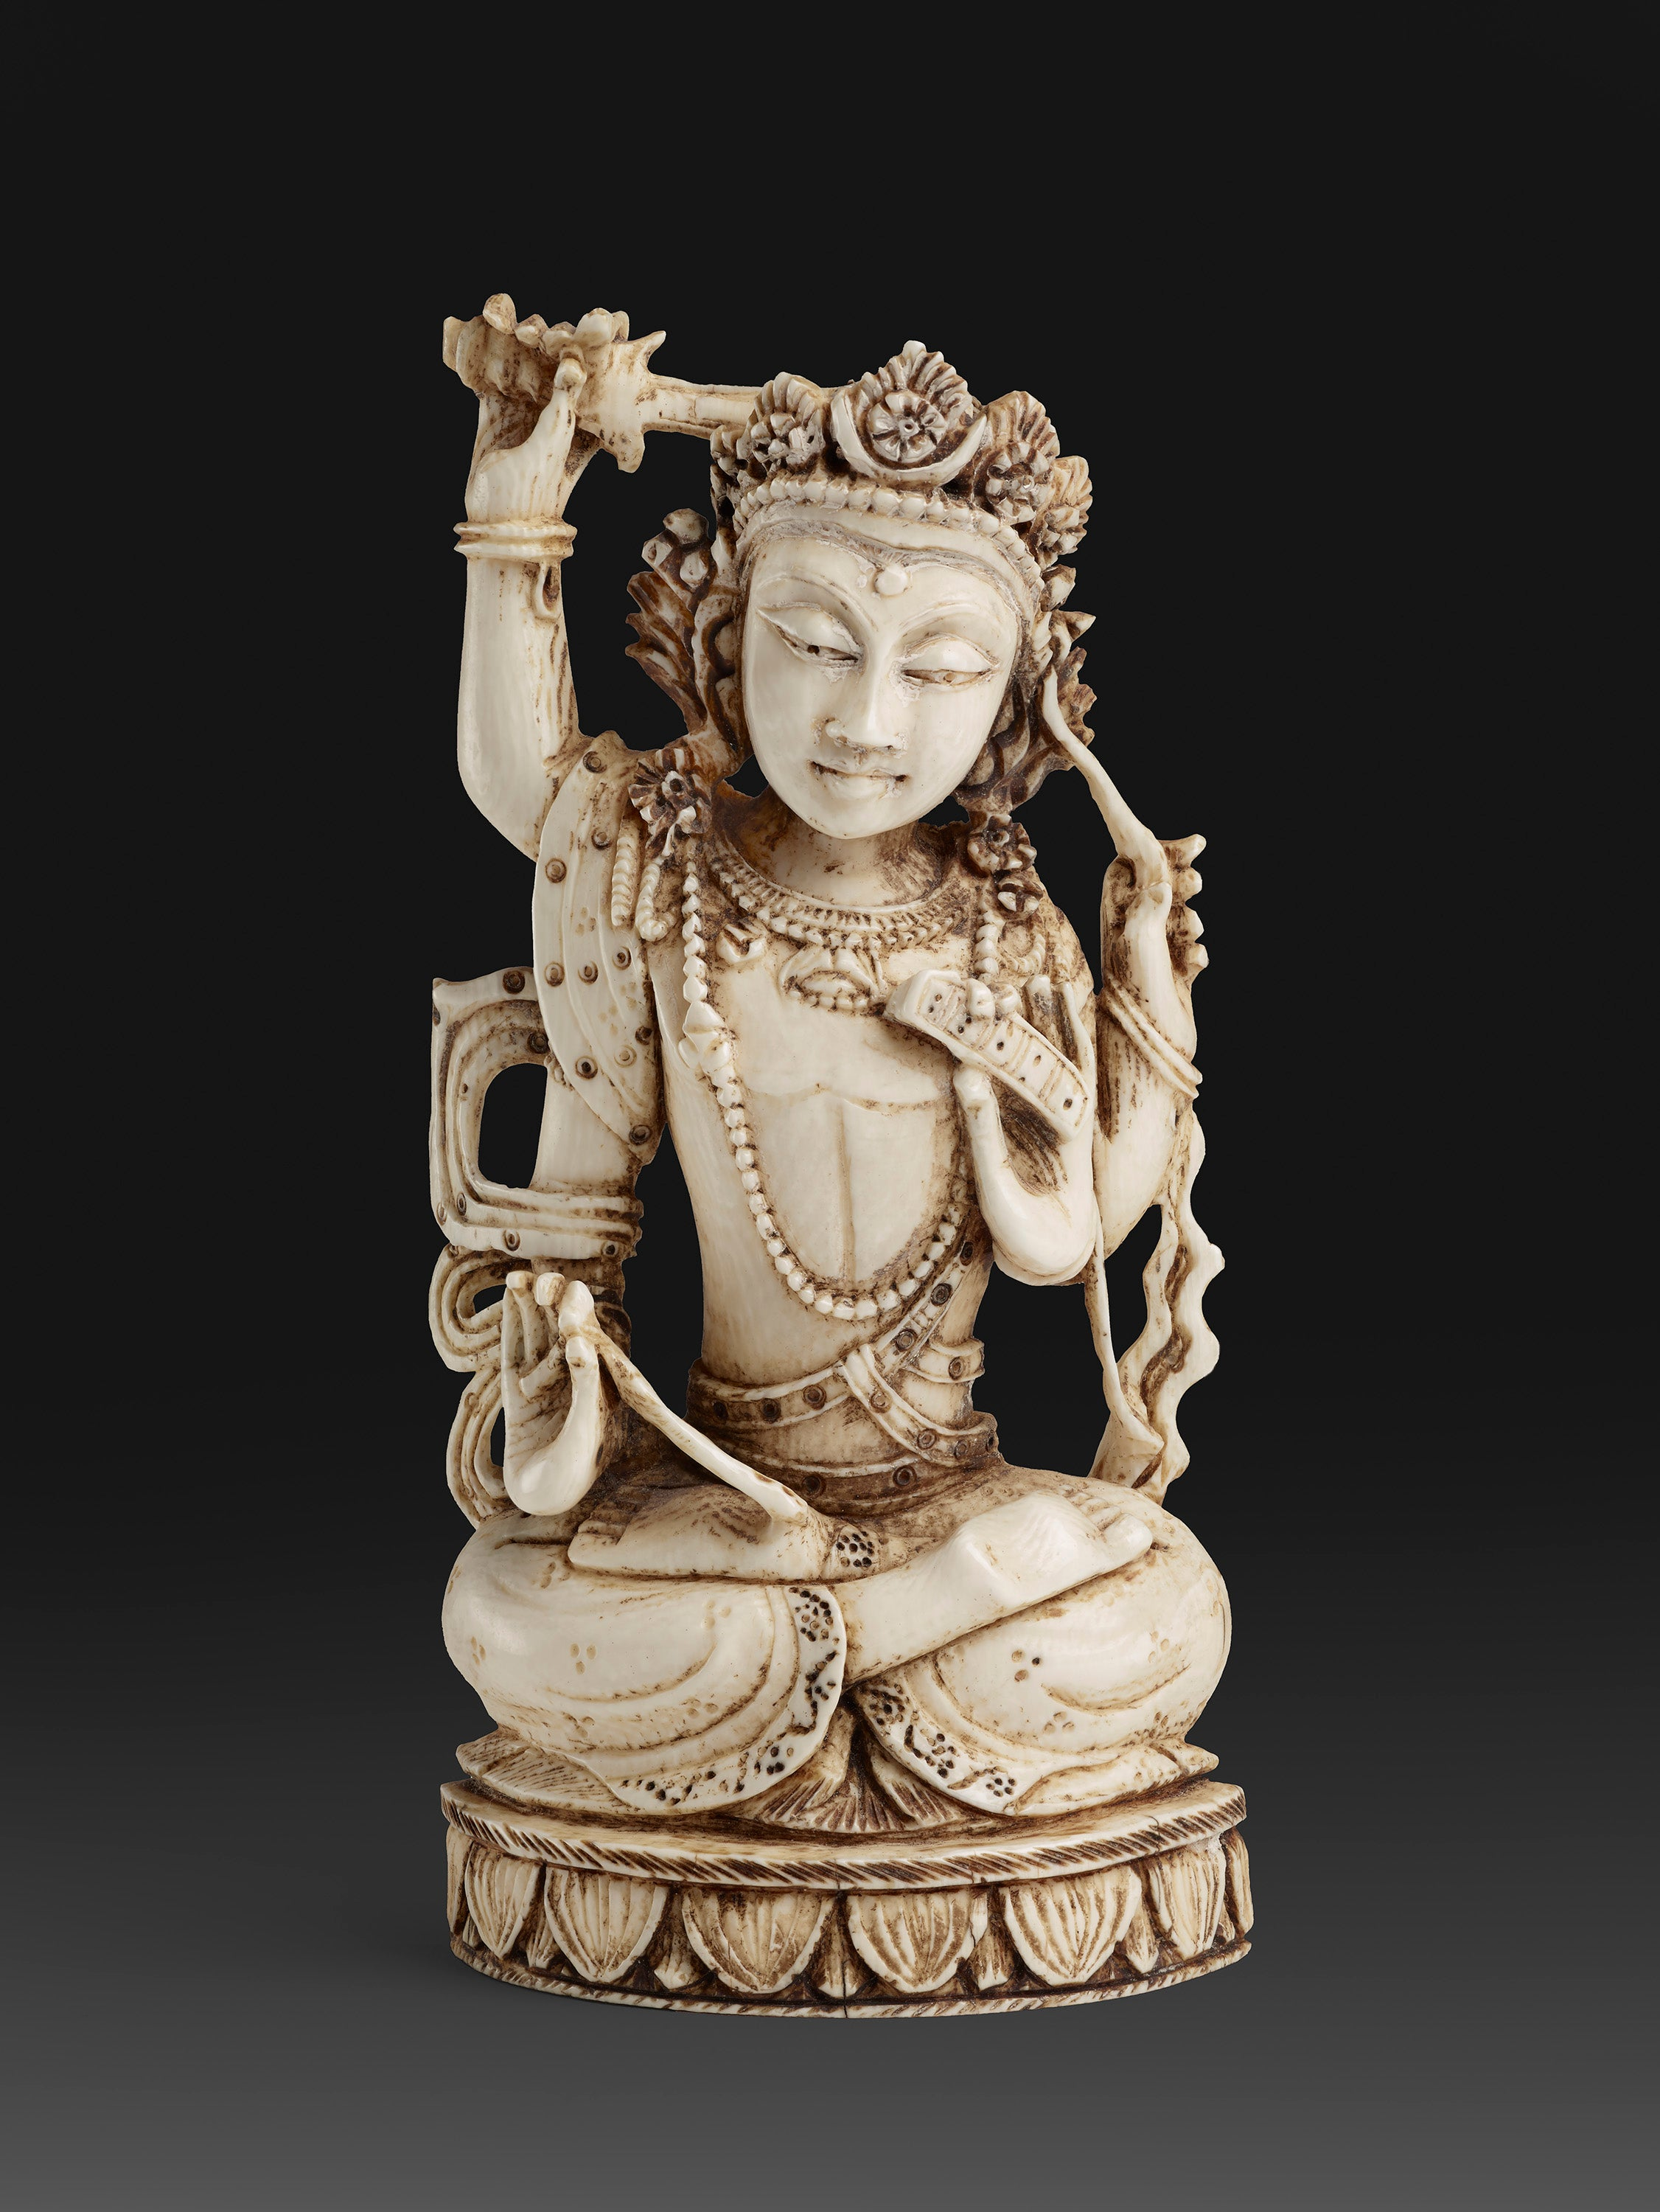 Poster - of an antique figurine from India